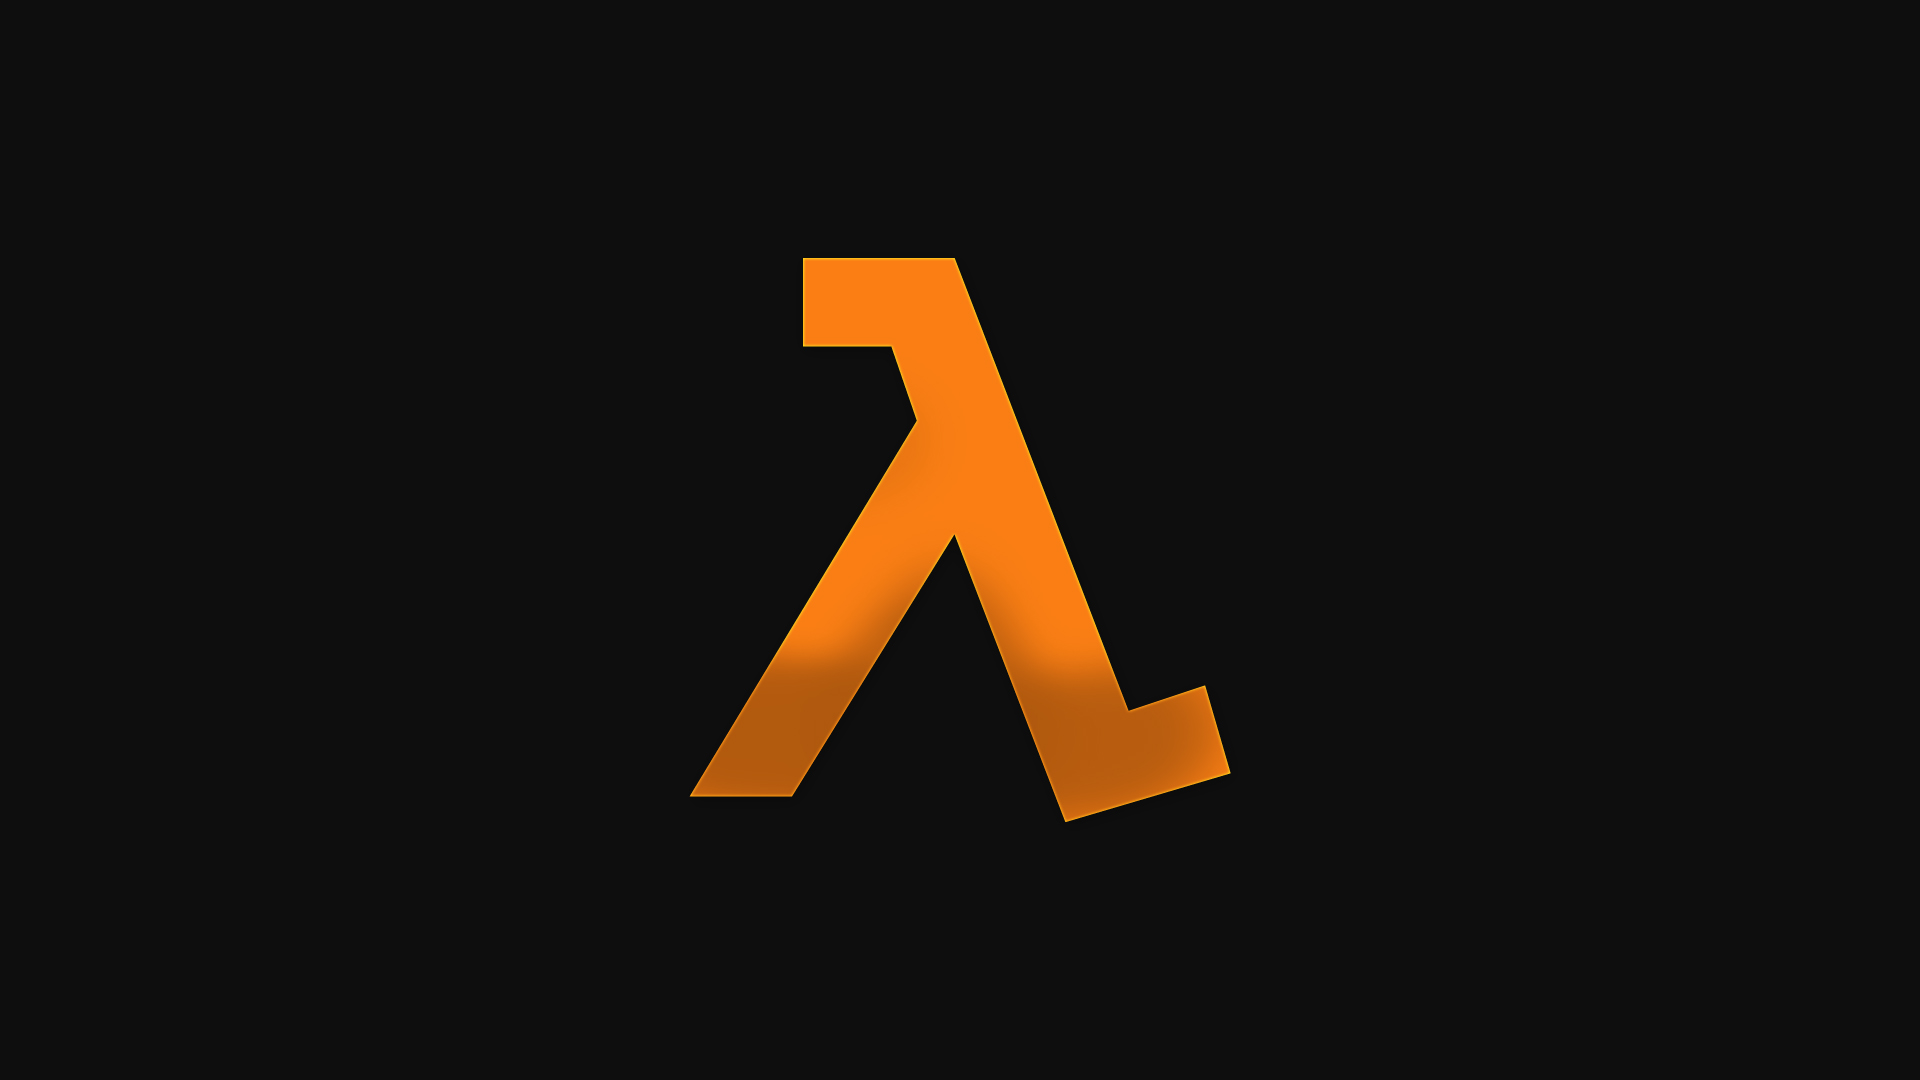 Half Life Logo Res: 1920x1080 HD / Size:196kb. Views: 15073